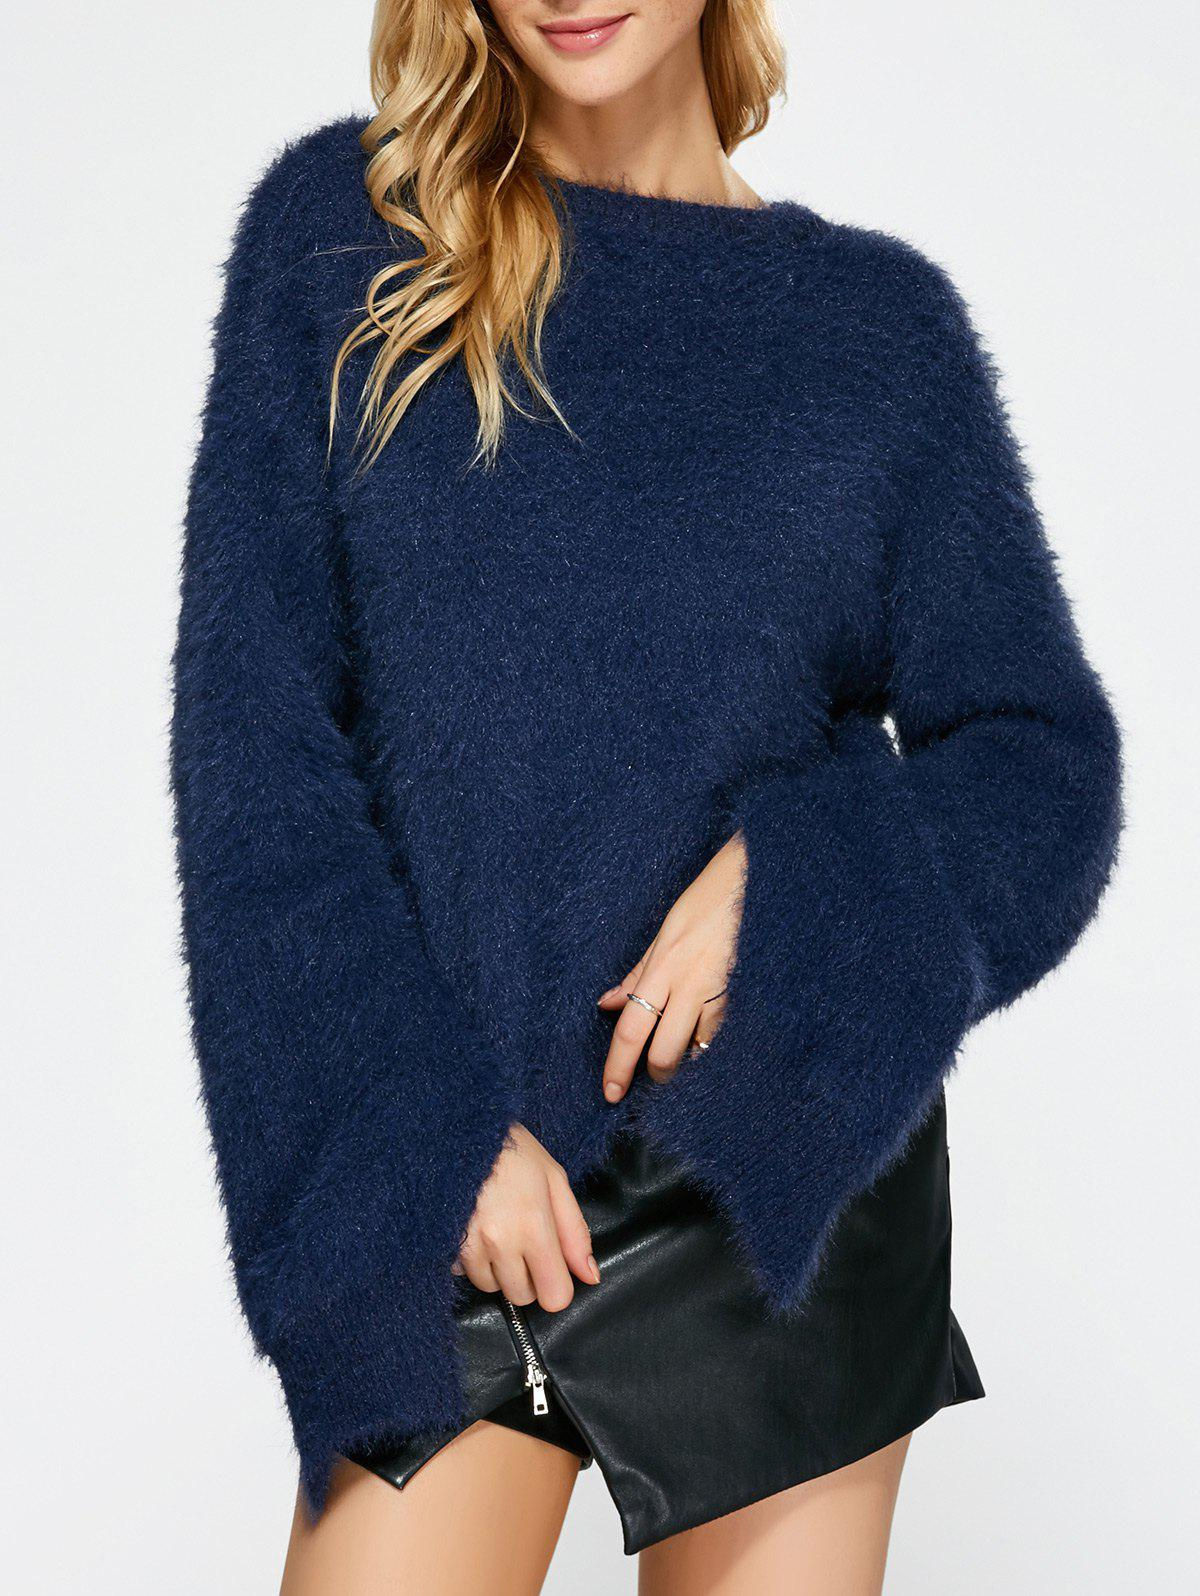 Slit Sleeve Fuzzy Sweater - PURPLISH BLUE ONE SIZE